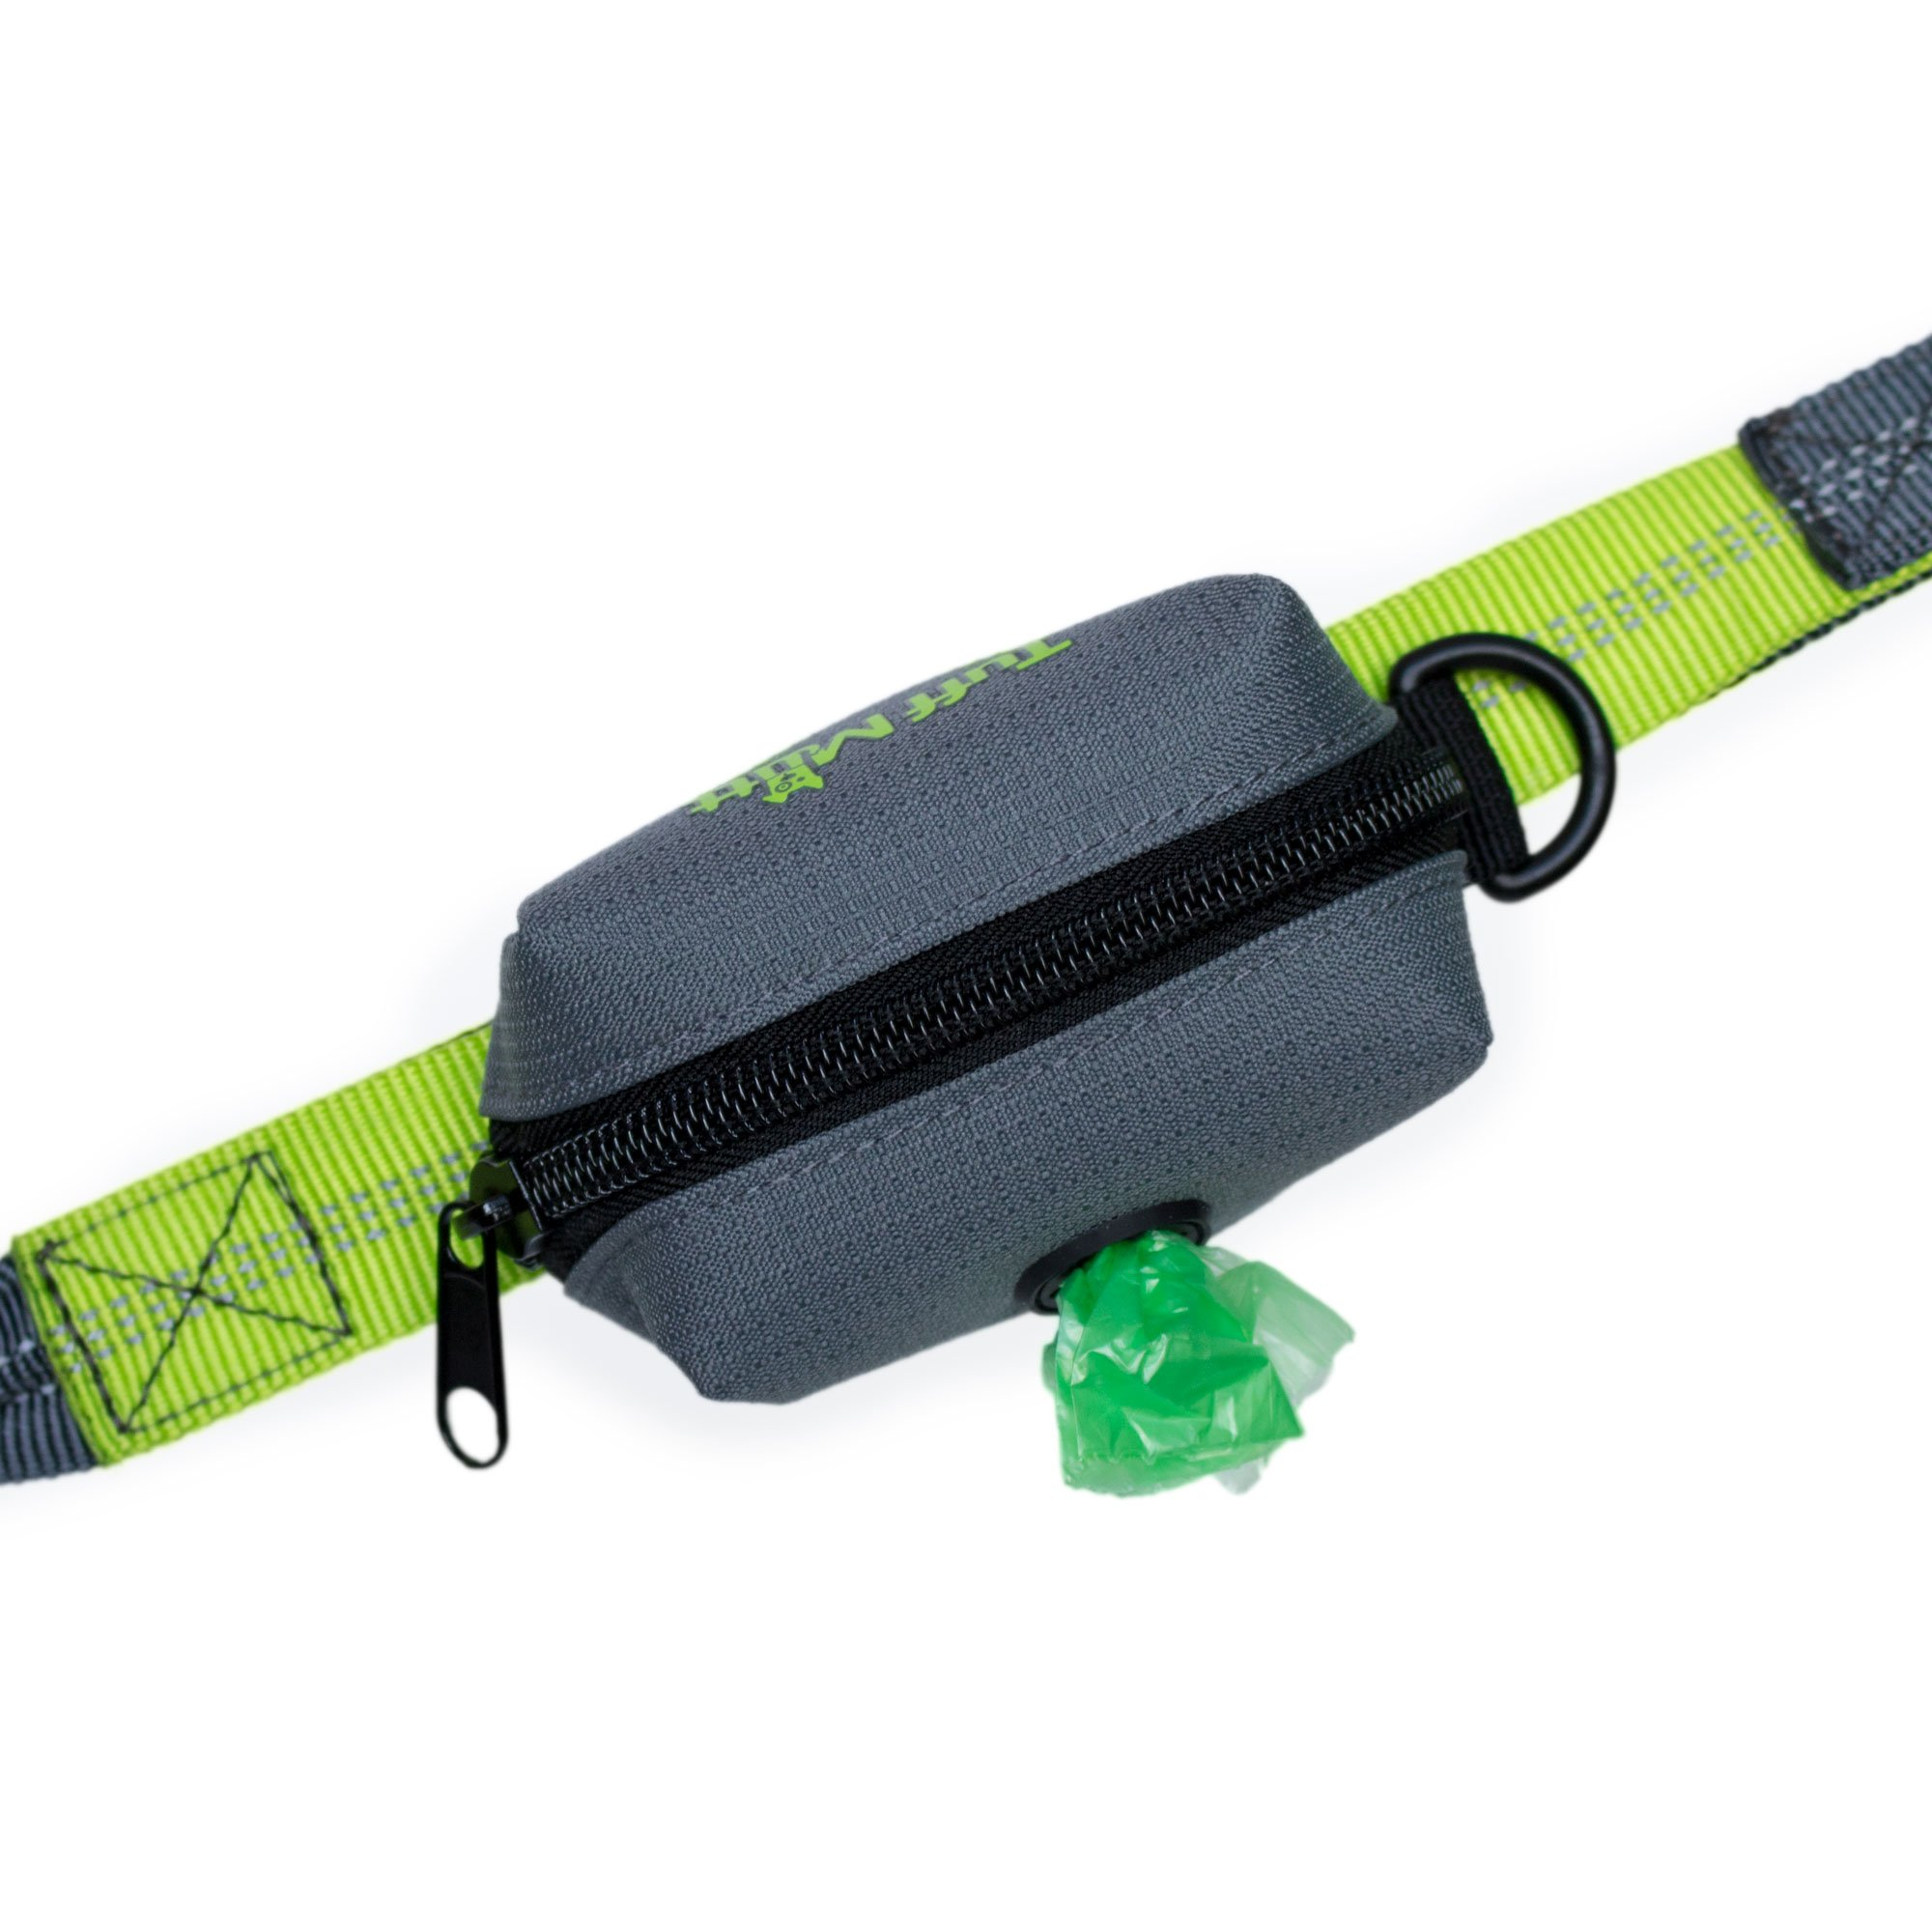 Tuff Mutt - Dog Poop Bag Holder Leash Attachment, Includes 1 Roll of Poop Bags, Waste Bag Dispenser, Lightweight Fabric, Walking, Running or Hiking Accessory